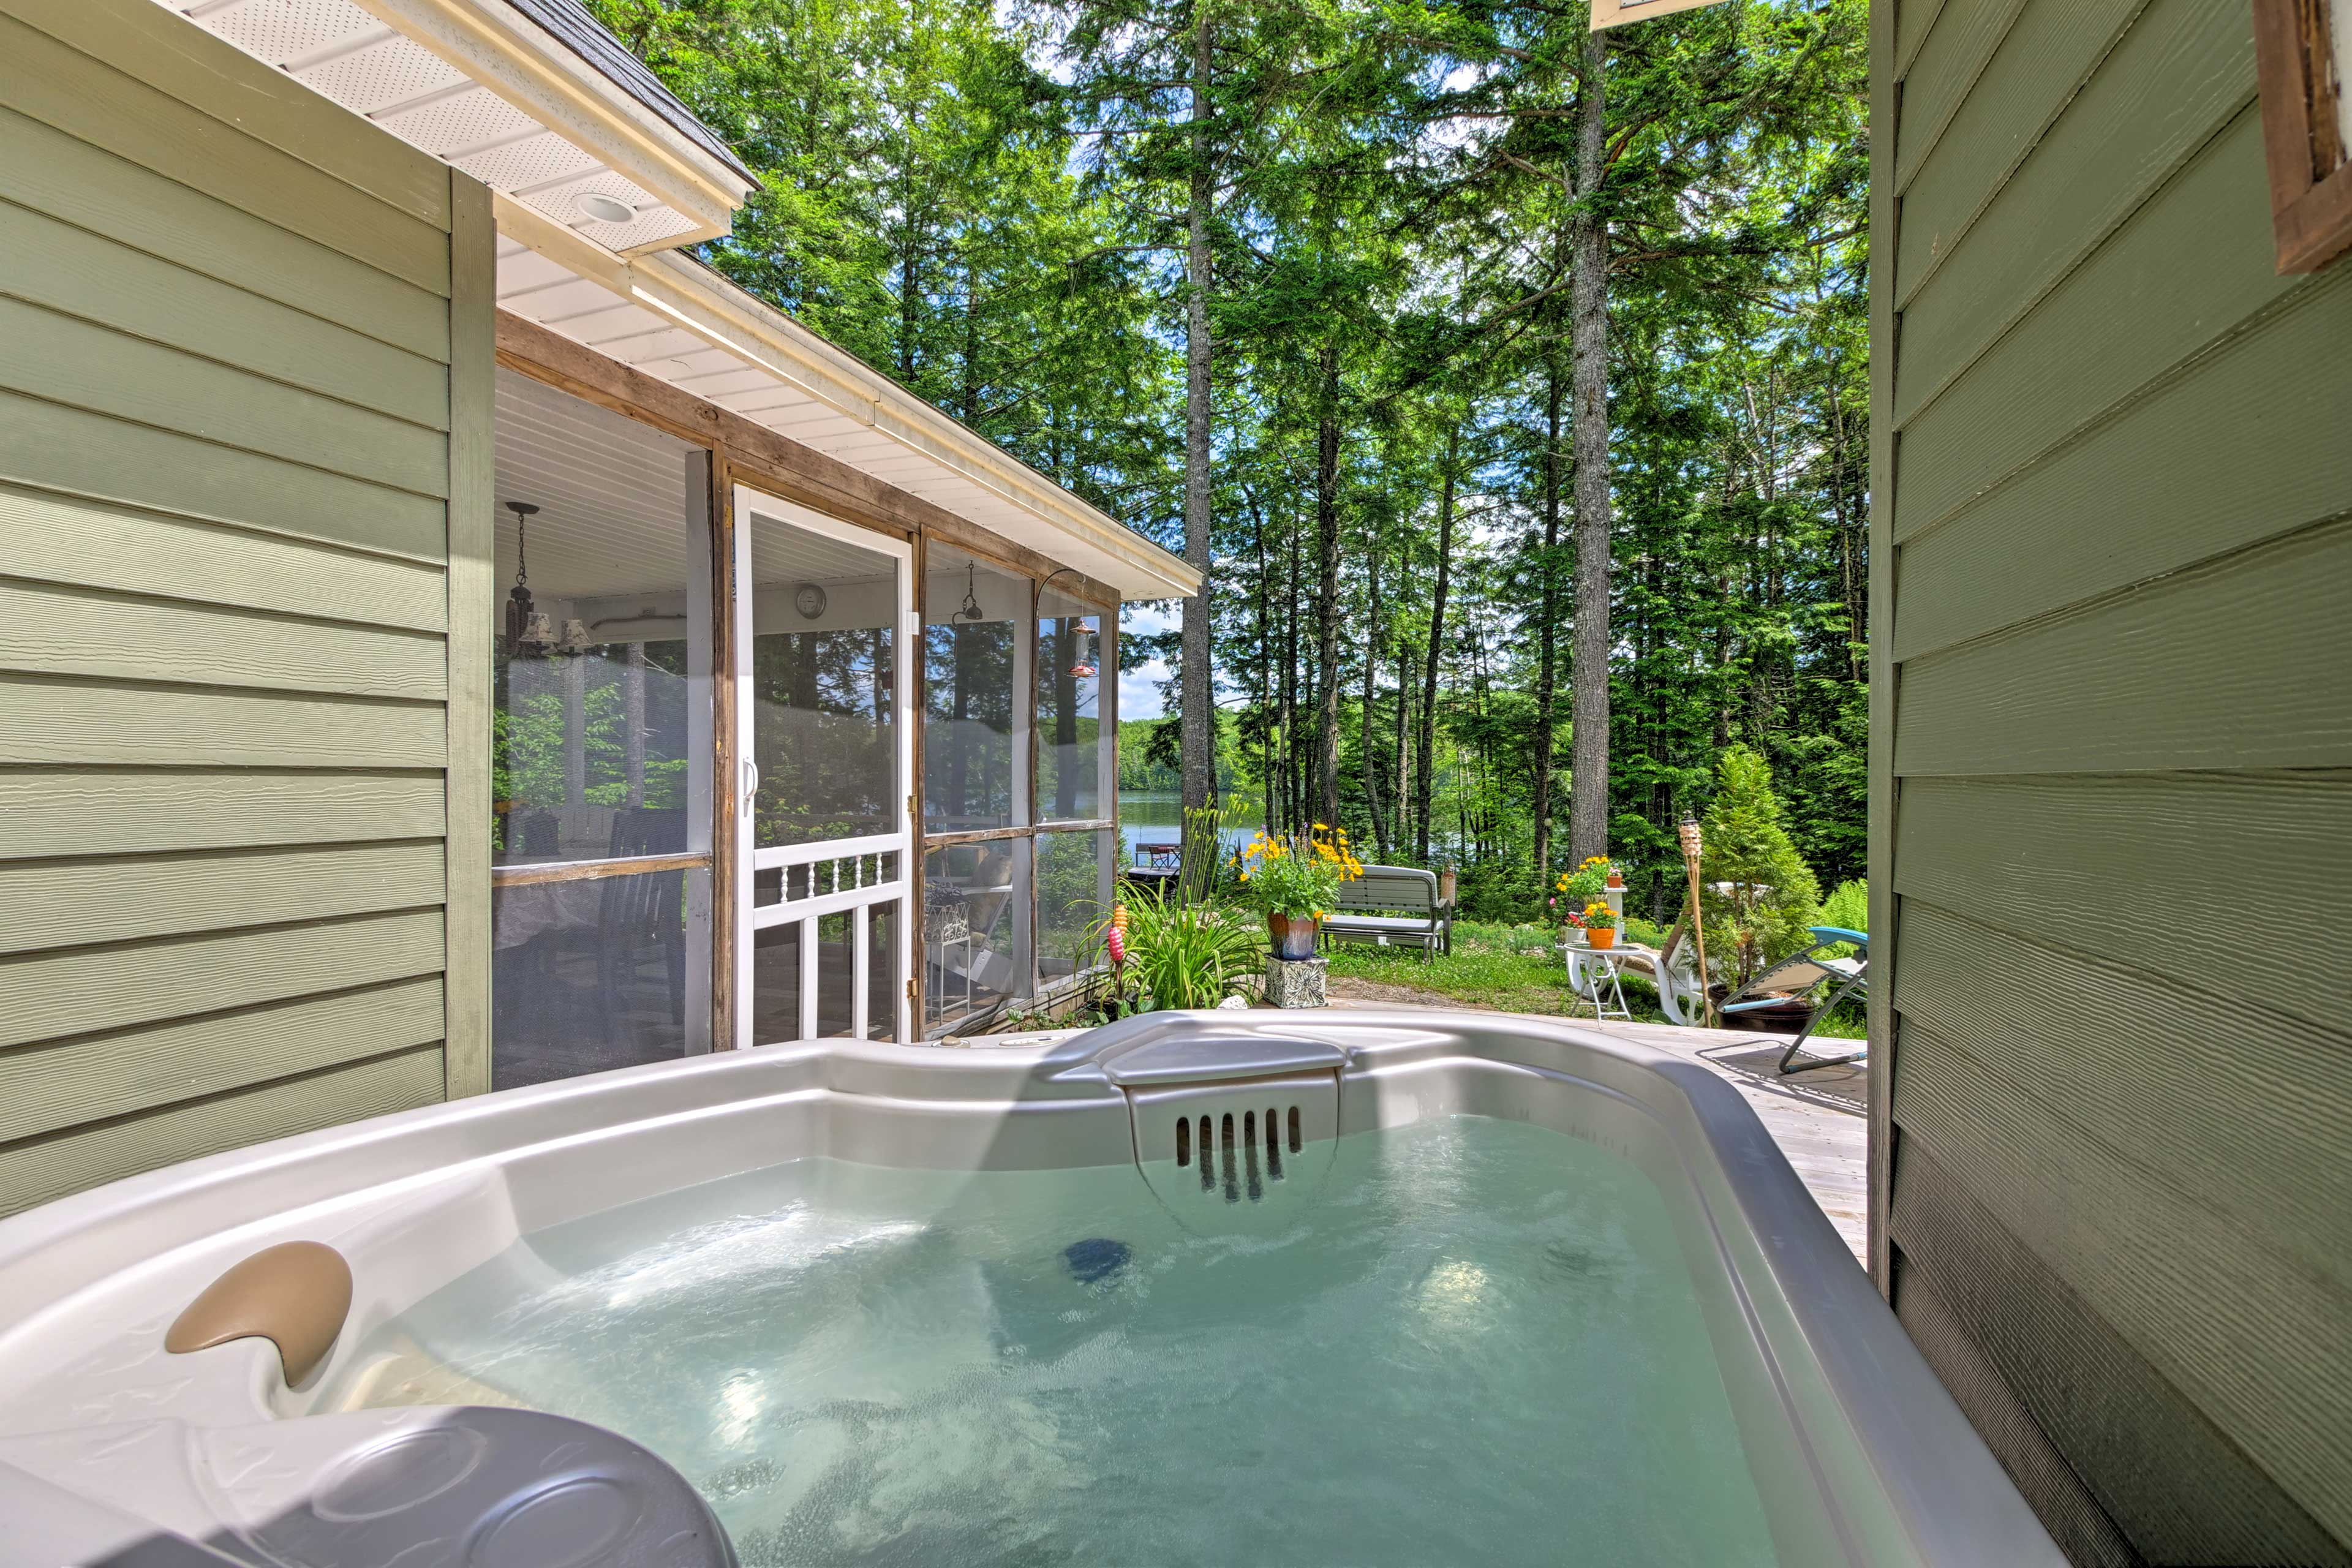 Wind down at night as you soak in the hot tub on the deck.